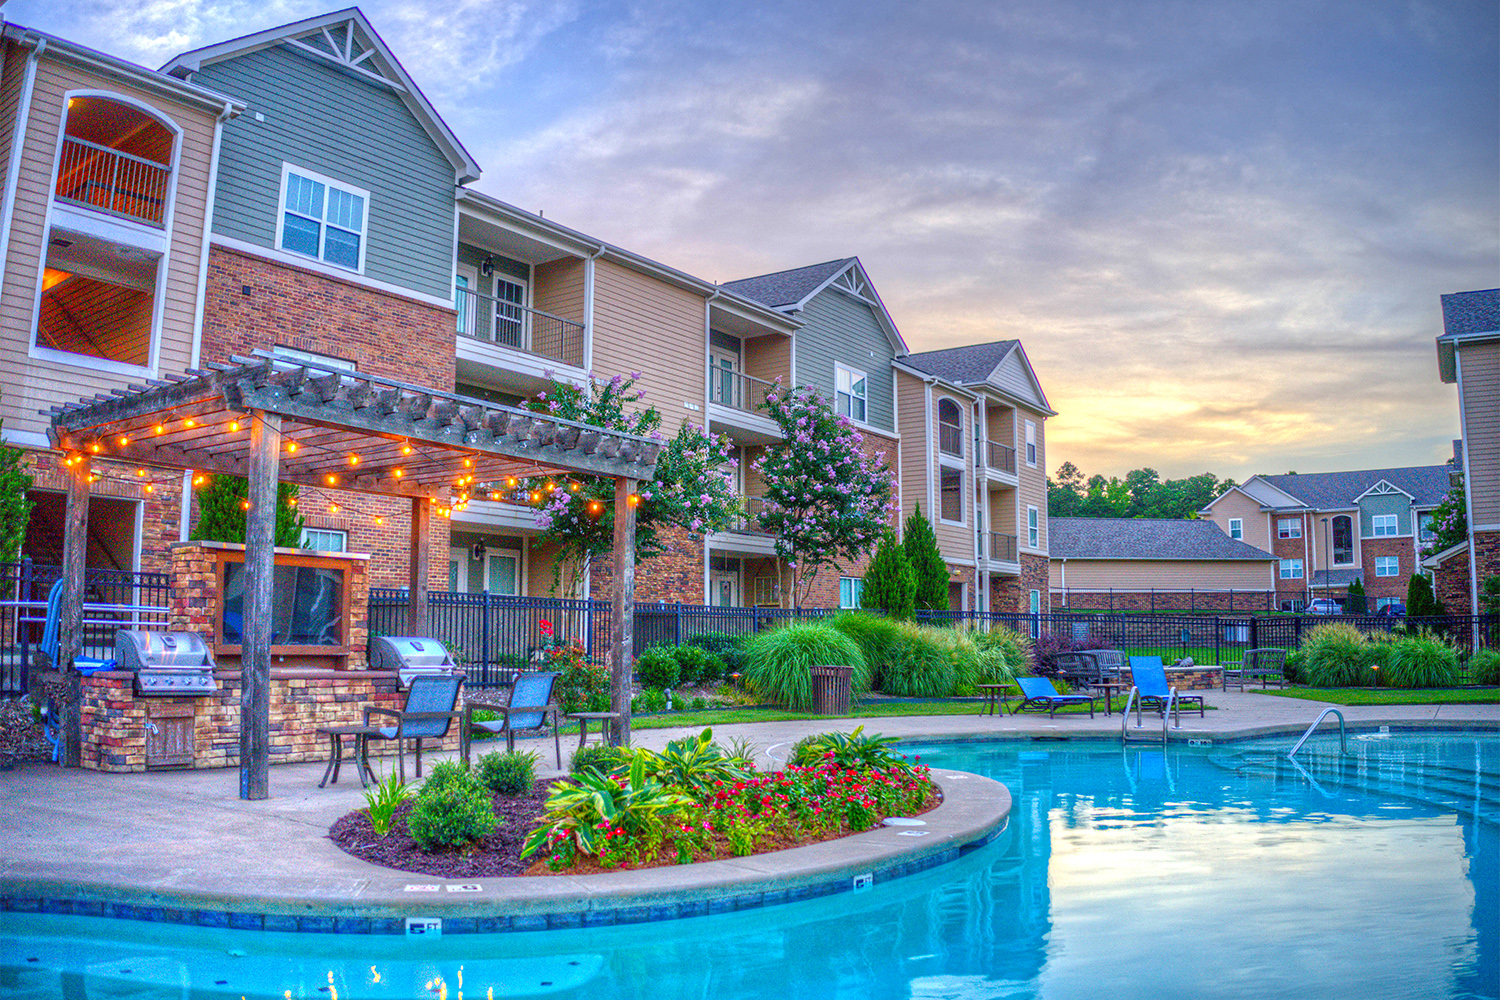 Balfour Beatty Communities Expands Multifamily Portfolio with Little Rock Acquisition